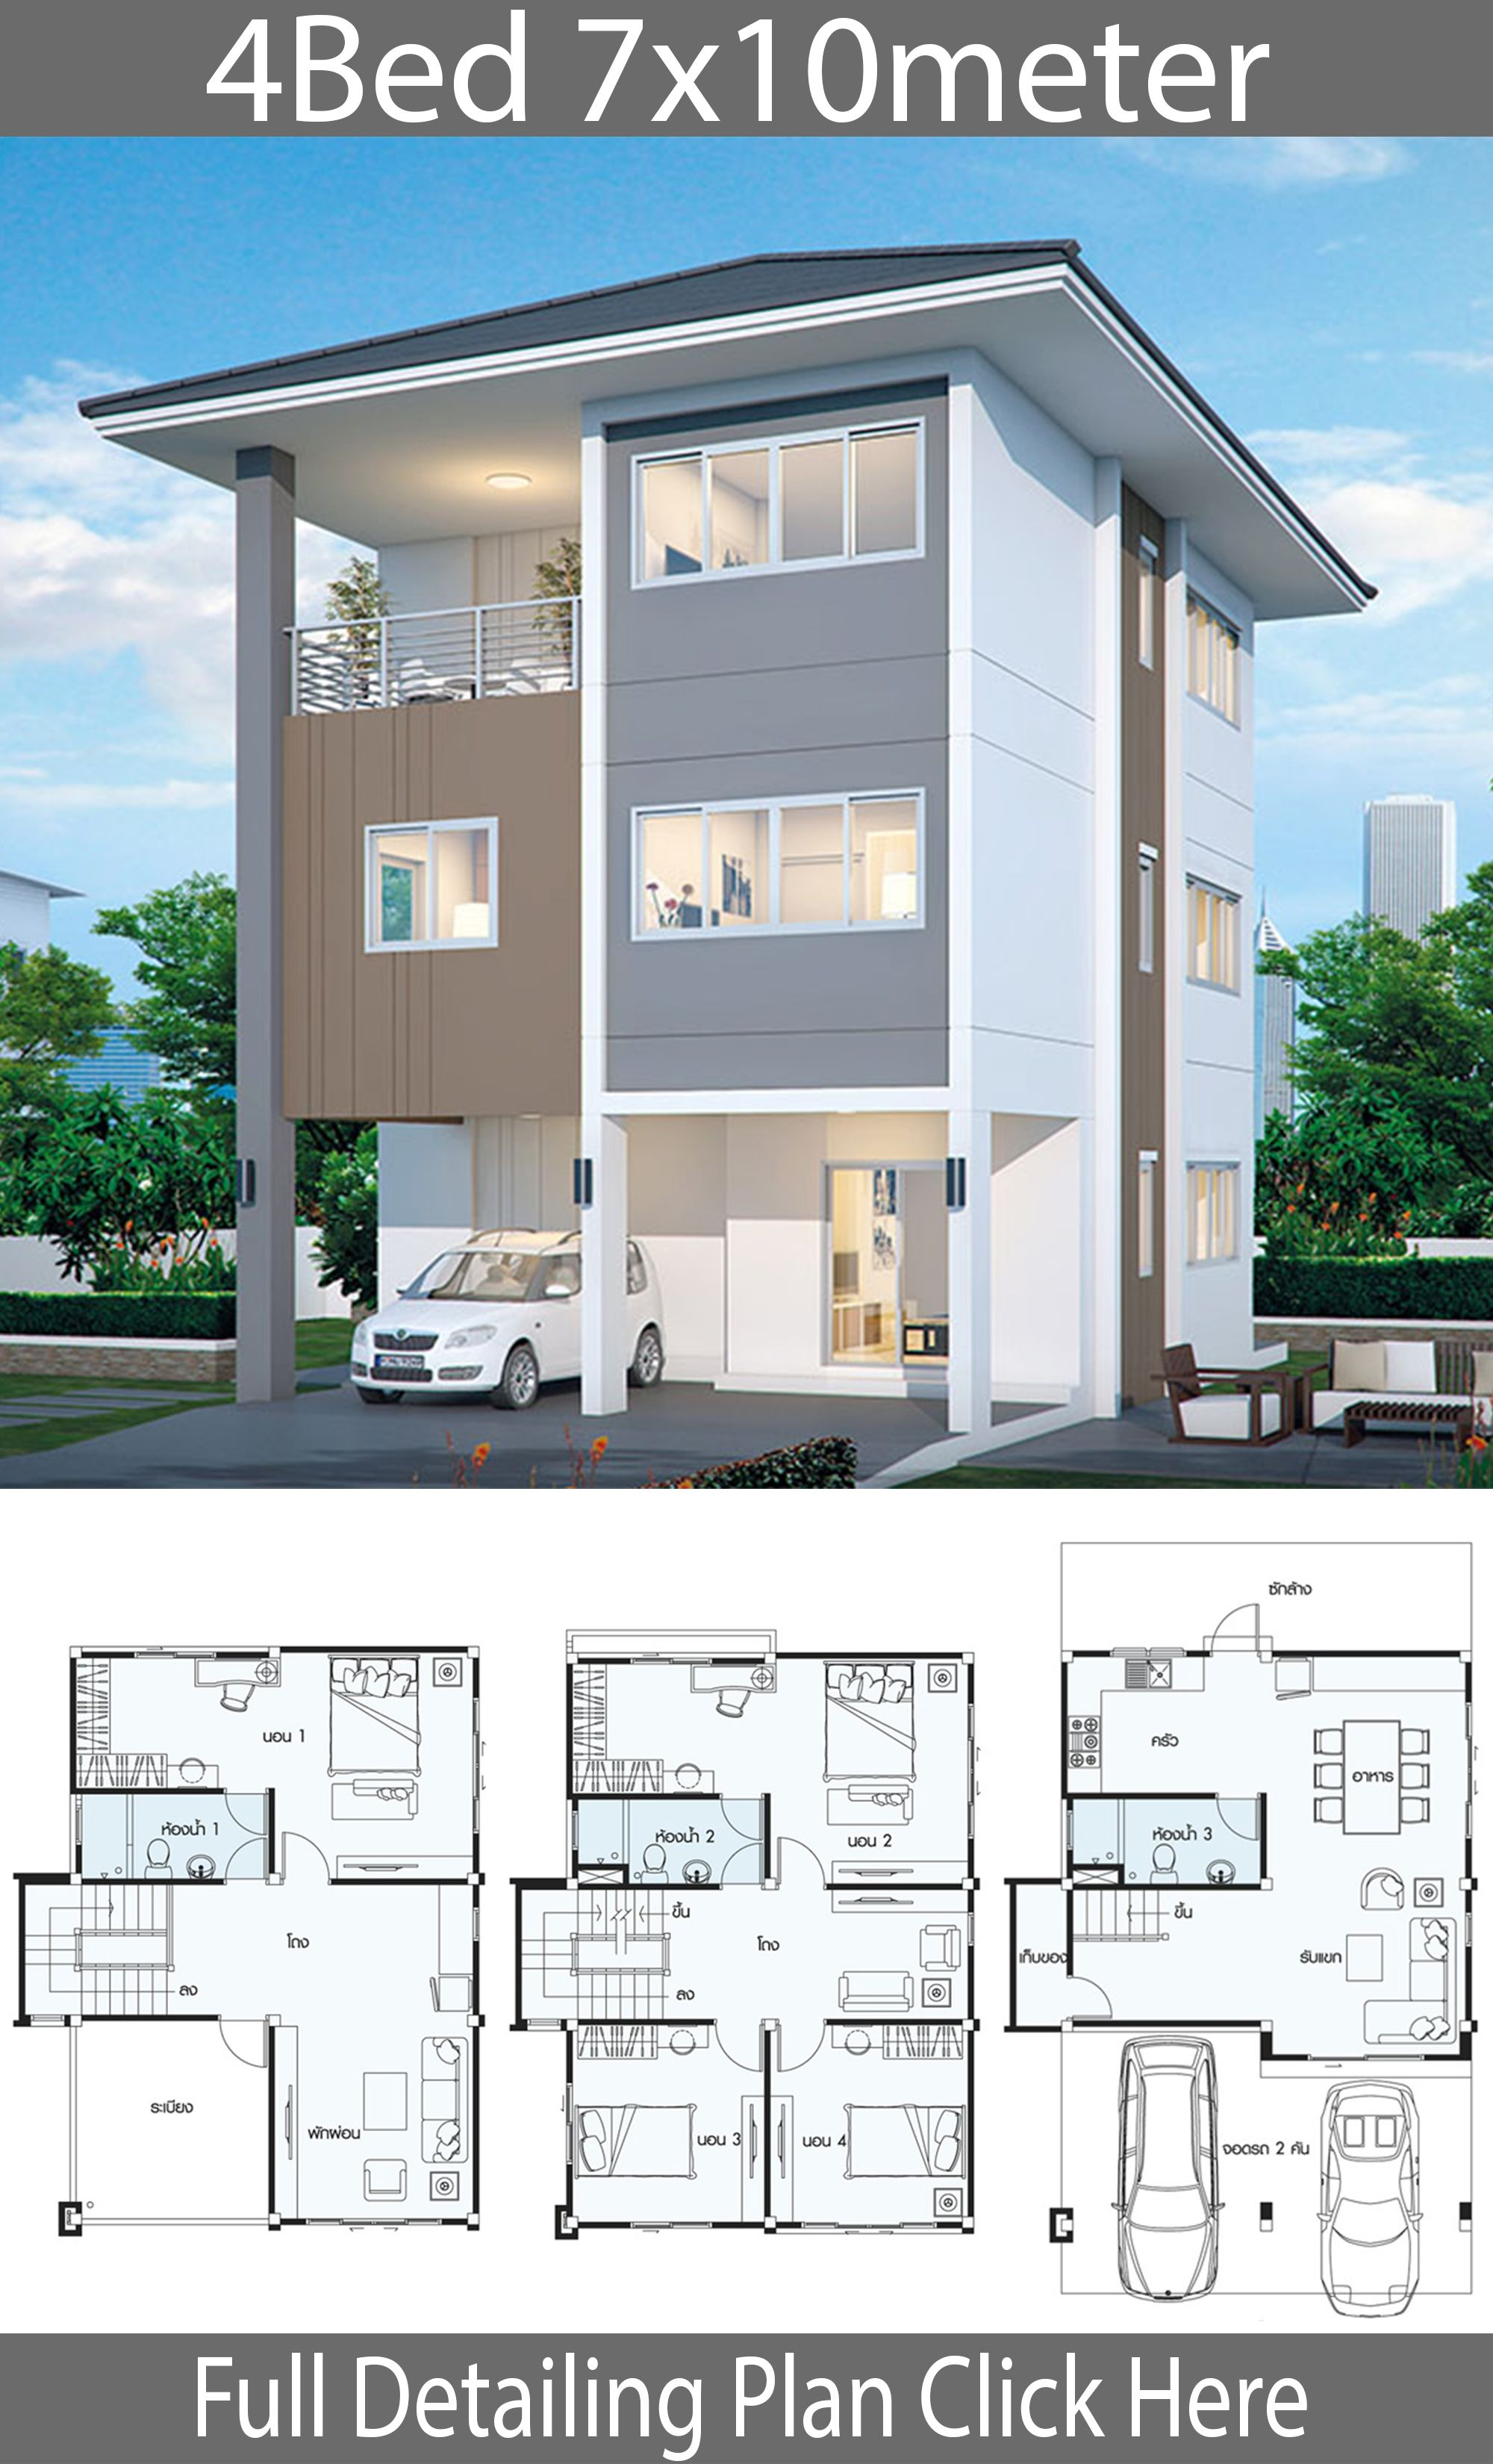 House Design Plan 7x10m With 4 Bedrooms House Idea In 2020 Sims House Plans Town House Floor Plan Home Design Plan